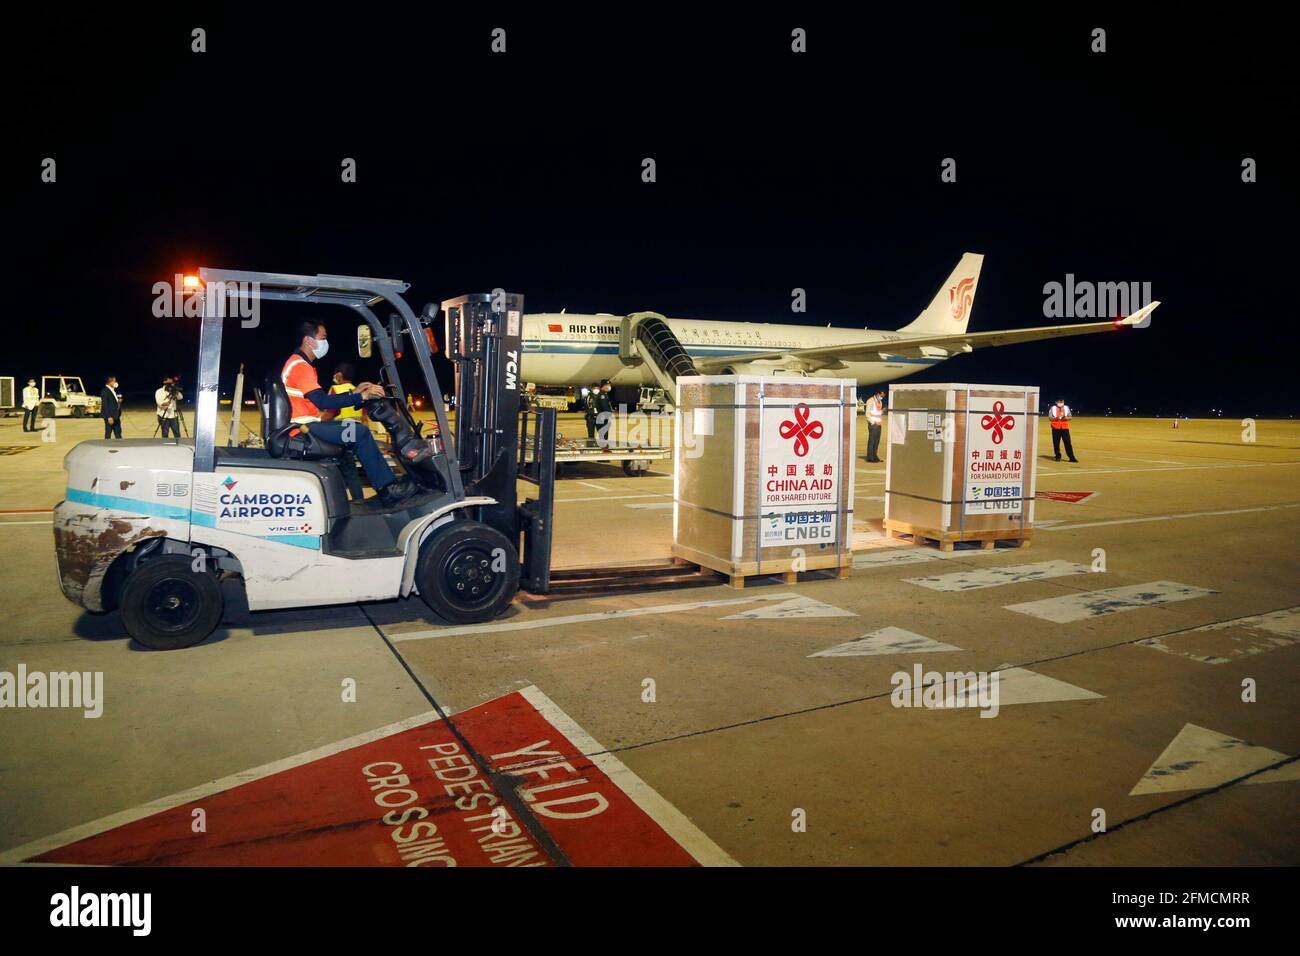 (210508) -- BEIJING, May 8, 2021 (Xinhua) -- A worker transports Sinopharm COVID-19 vaccine at the Phnom Penh International Airport in Phnom Penh, Cambodia, April 28, 2021. (Photo by Phearum/Xinhua) Stock Photo